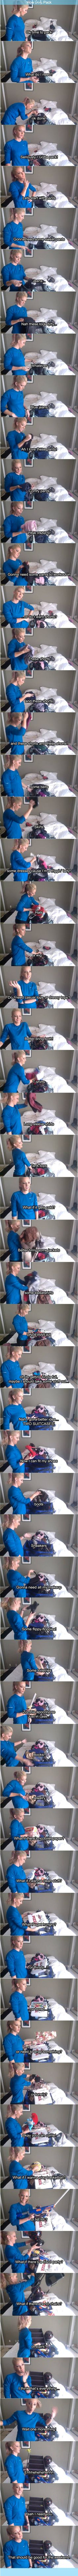 HAHA how girls pack by jenna marbles!However, as a girl who leaves for vacation this week... this is accurate.